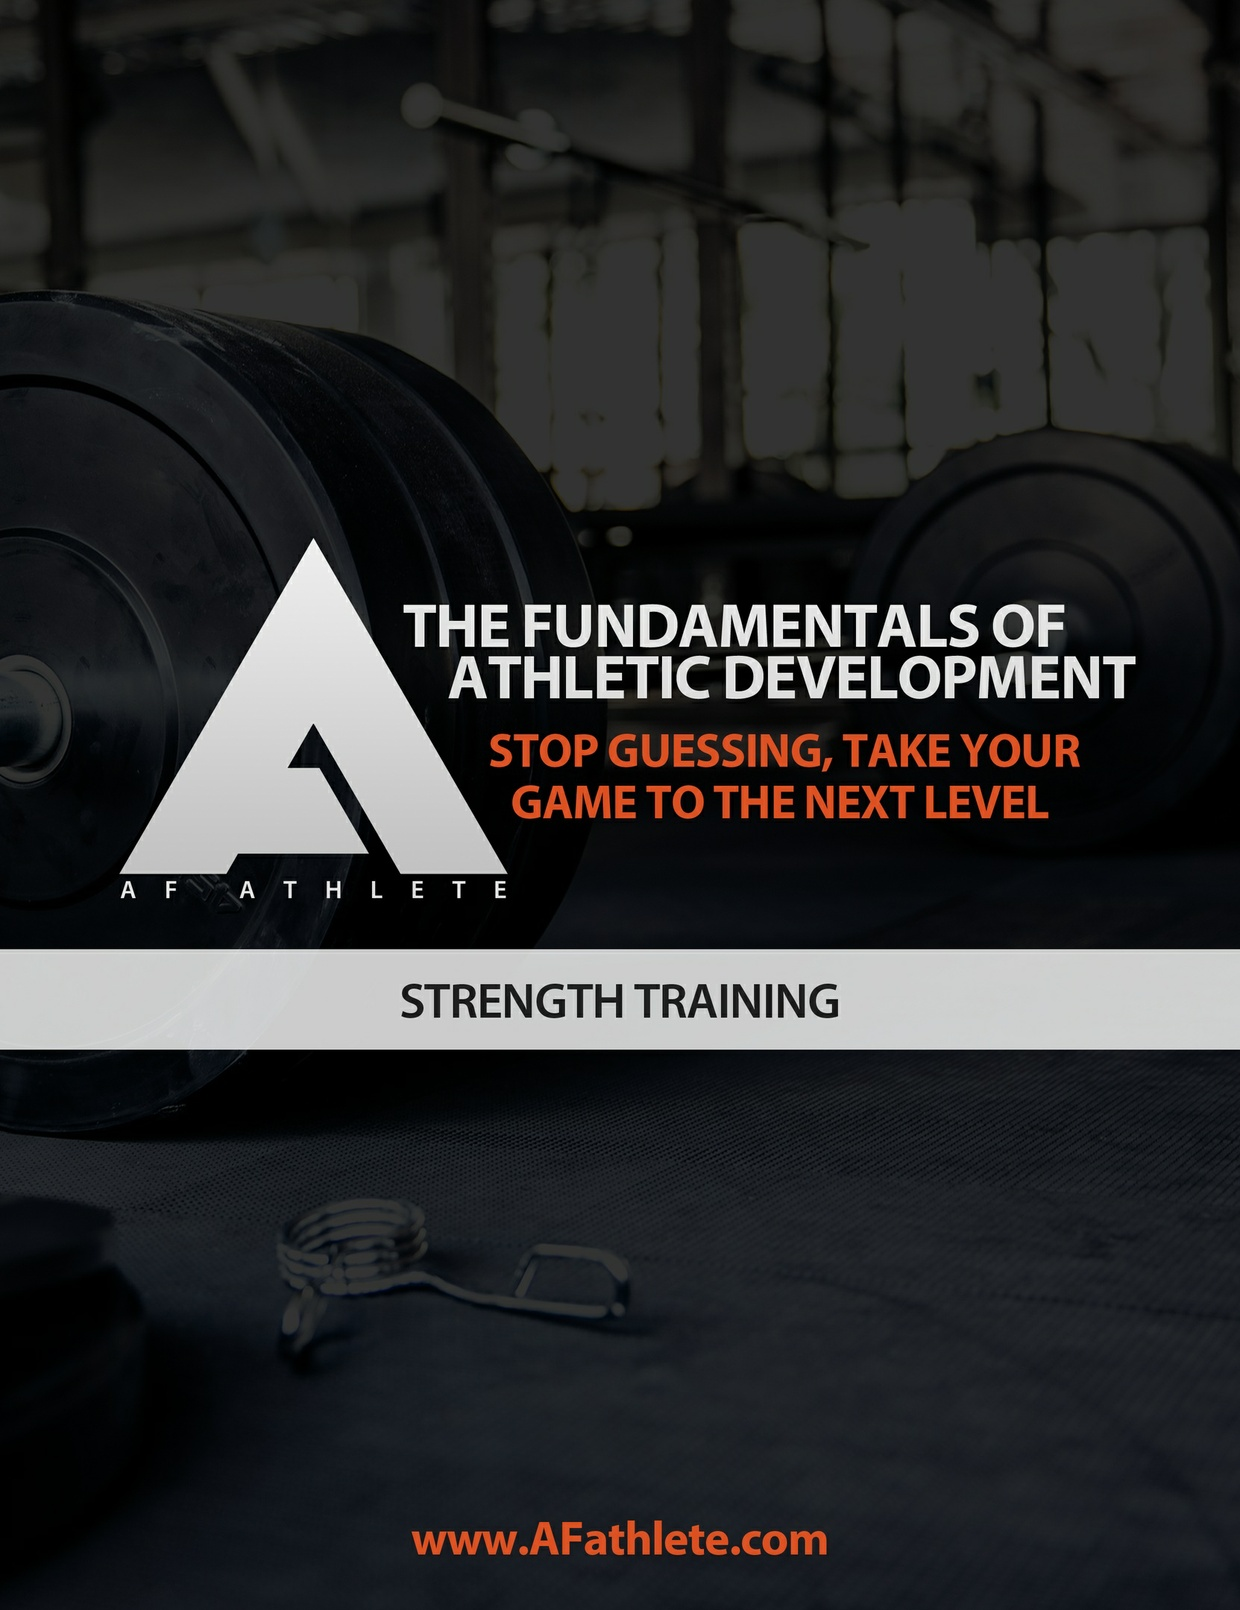 AFathlete - Strength training